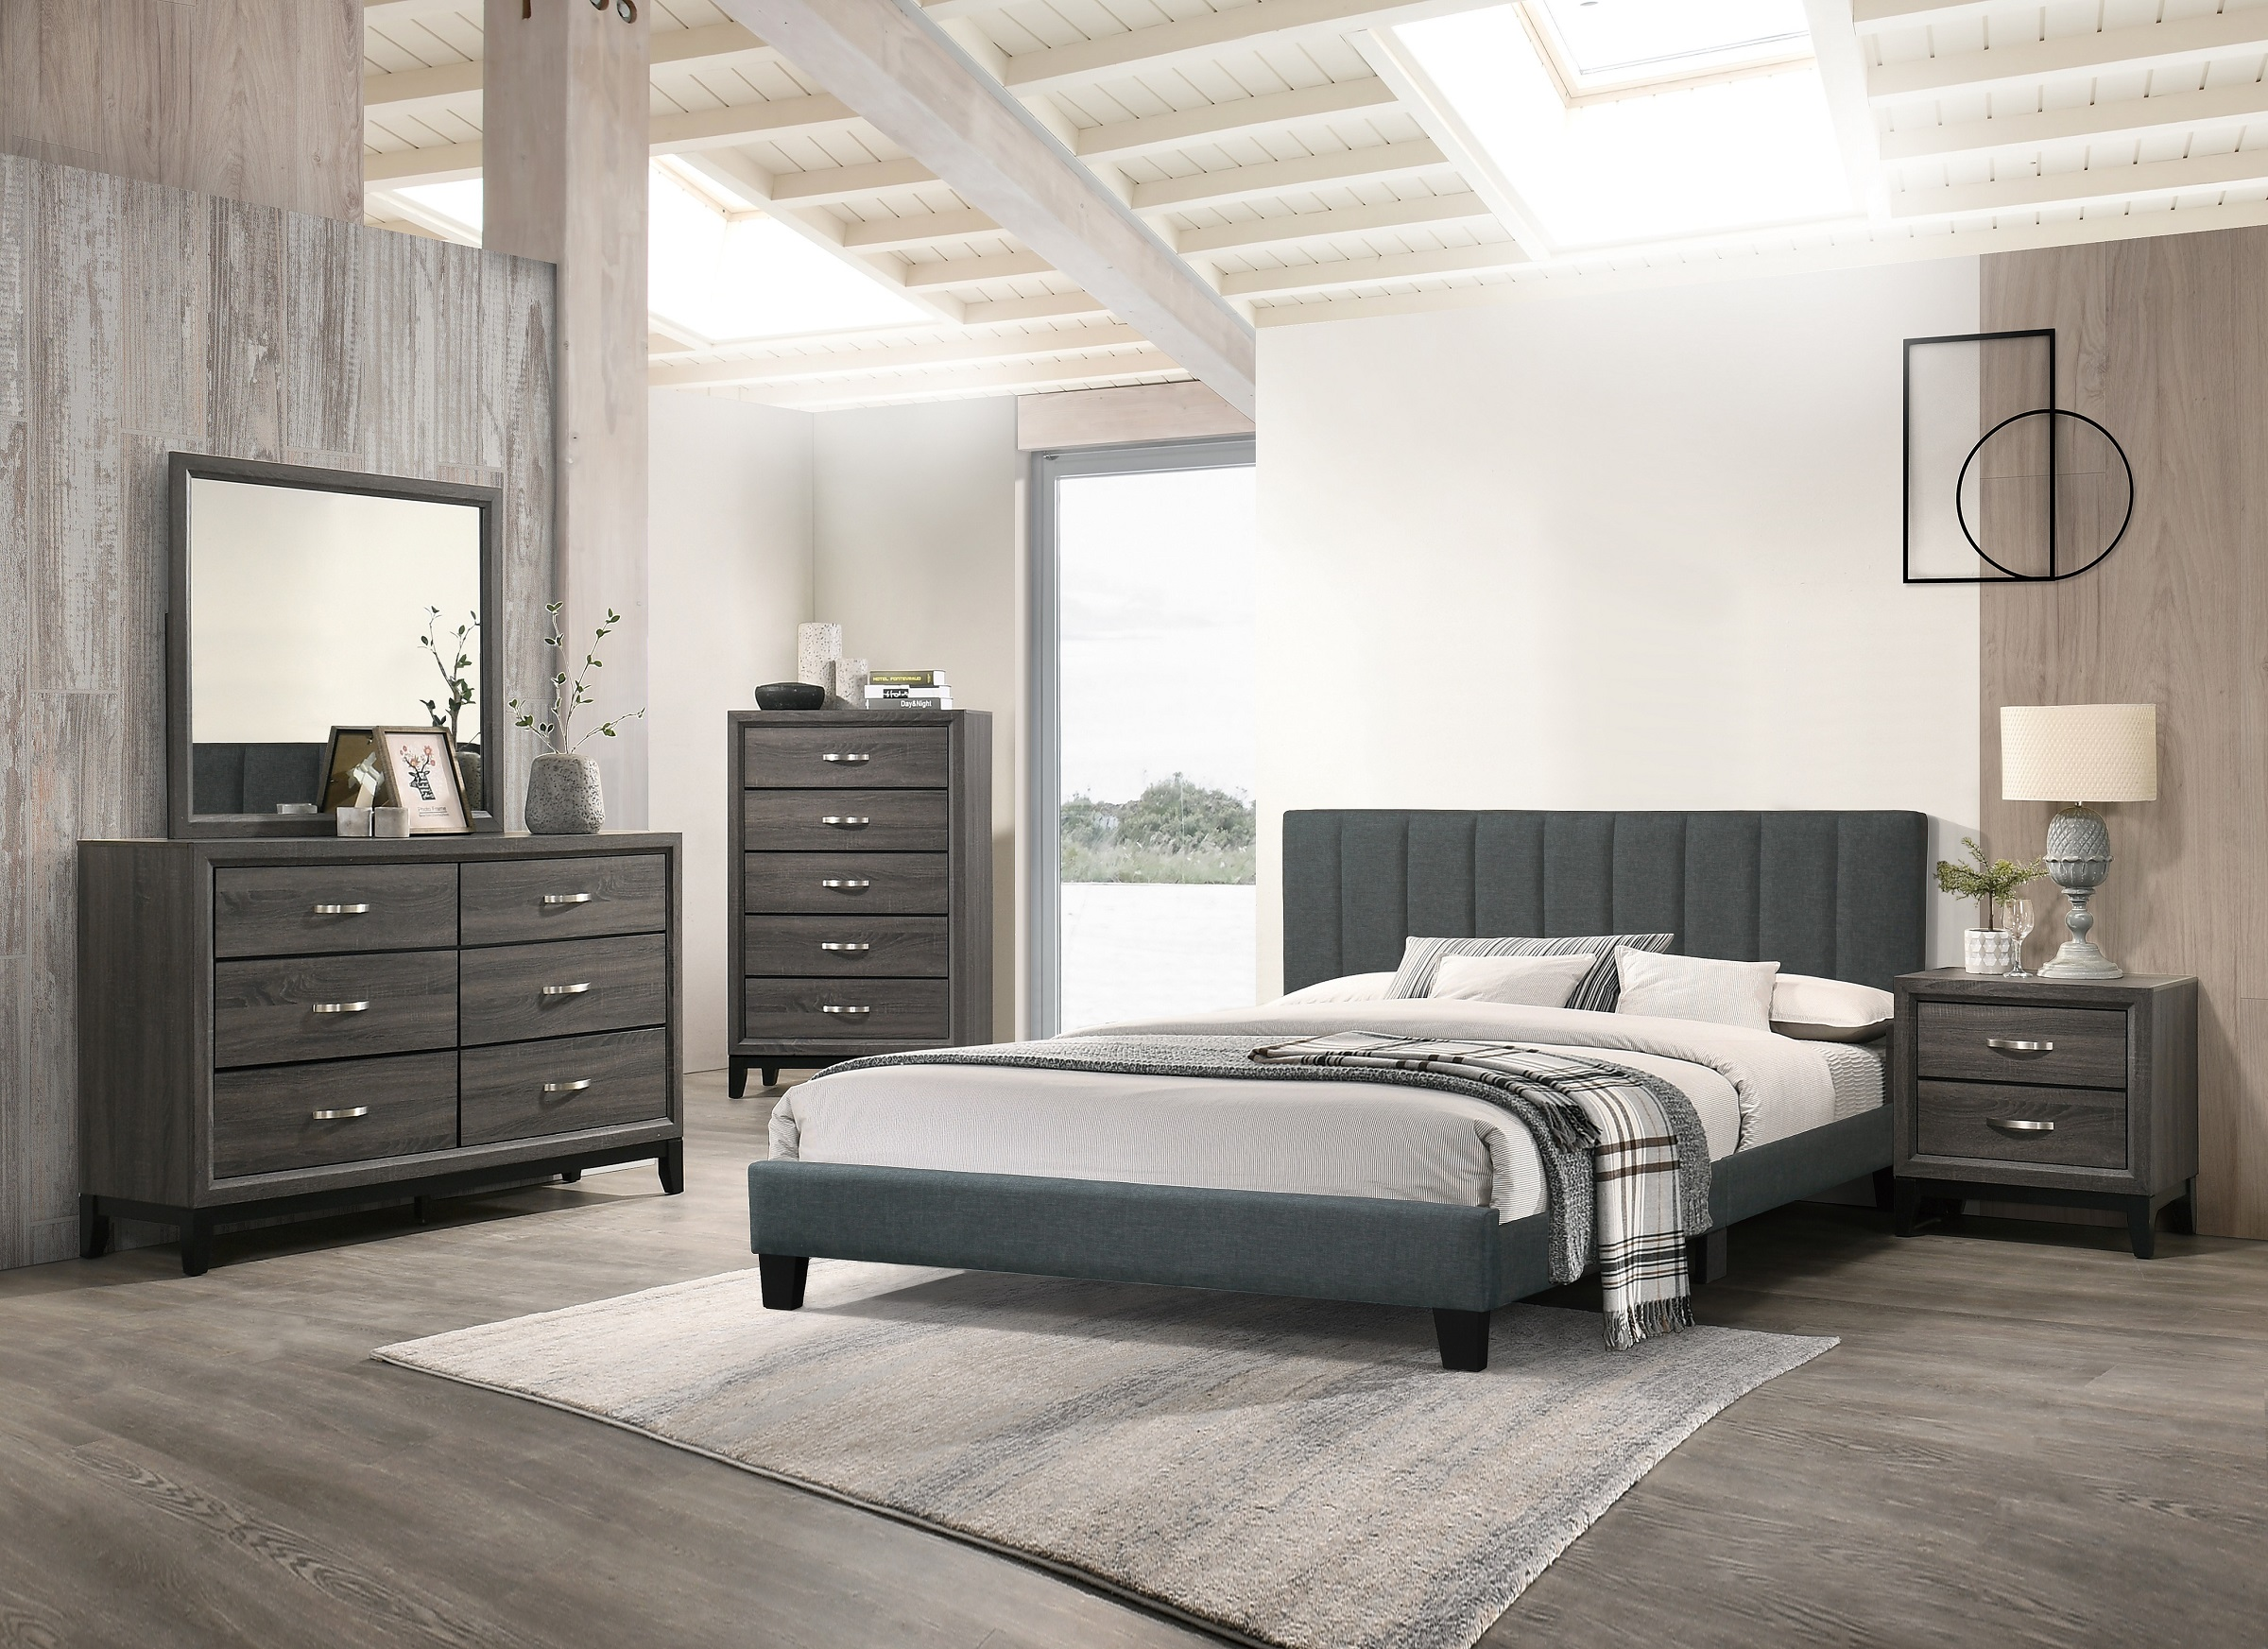 Modern Simple Bedroom Furniture 4pc Set Charcoal Queen ...